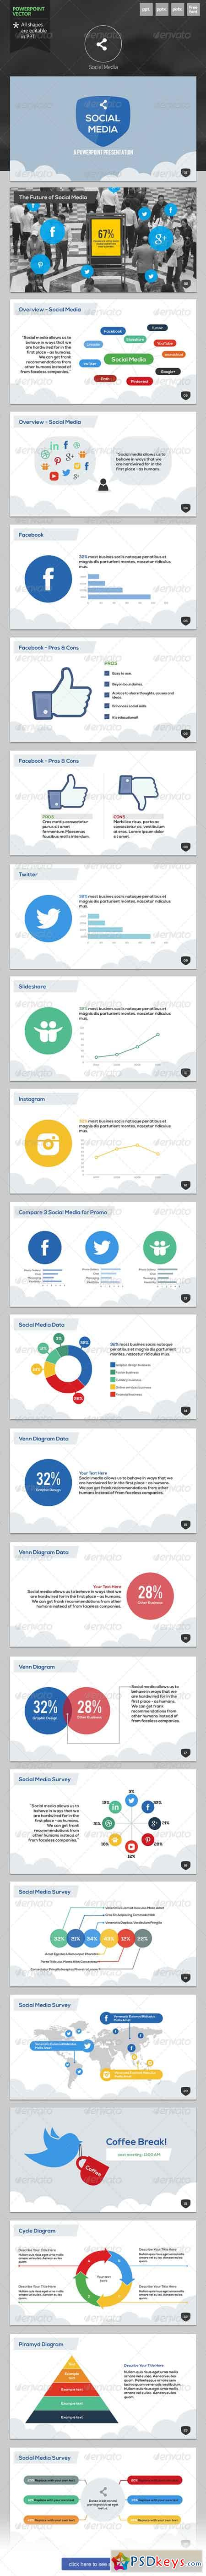 Social Media - Powerpoint Template 6335900